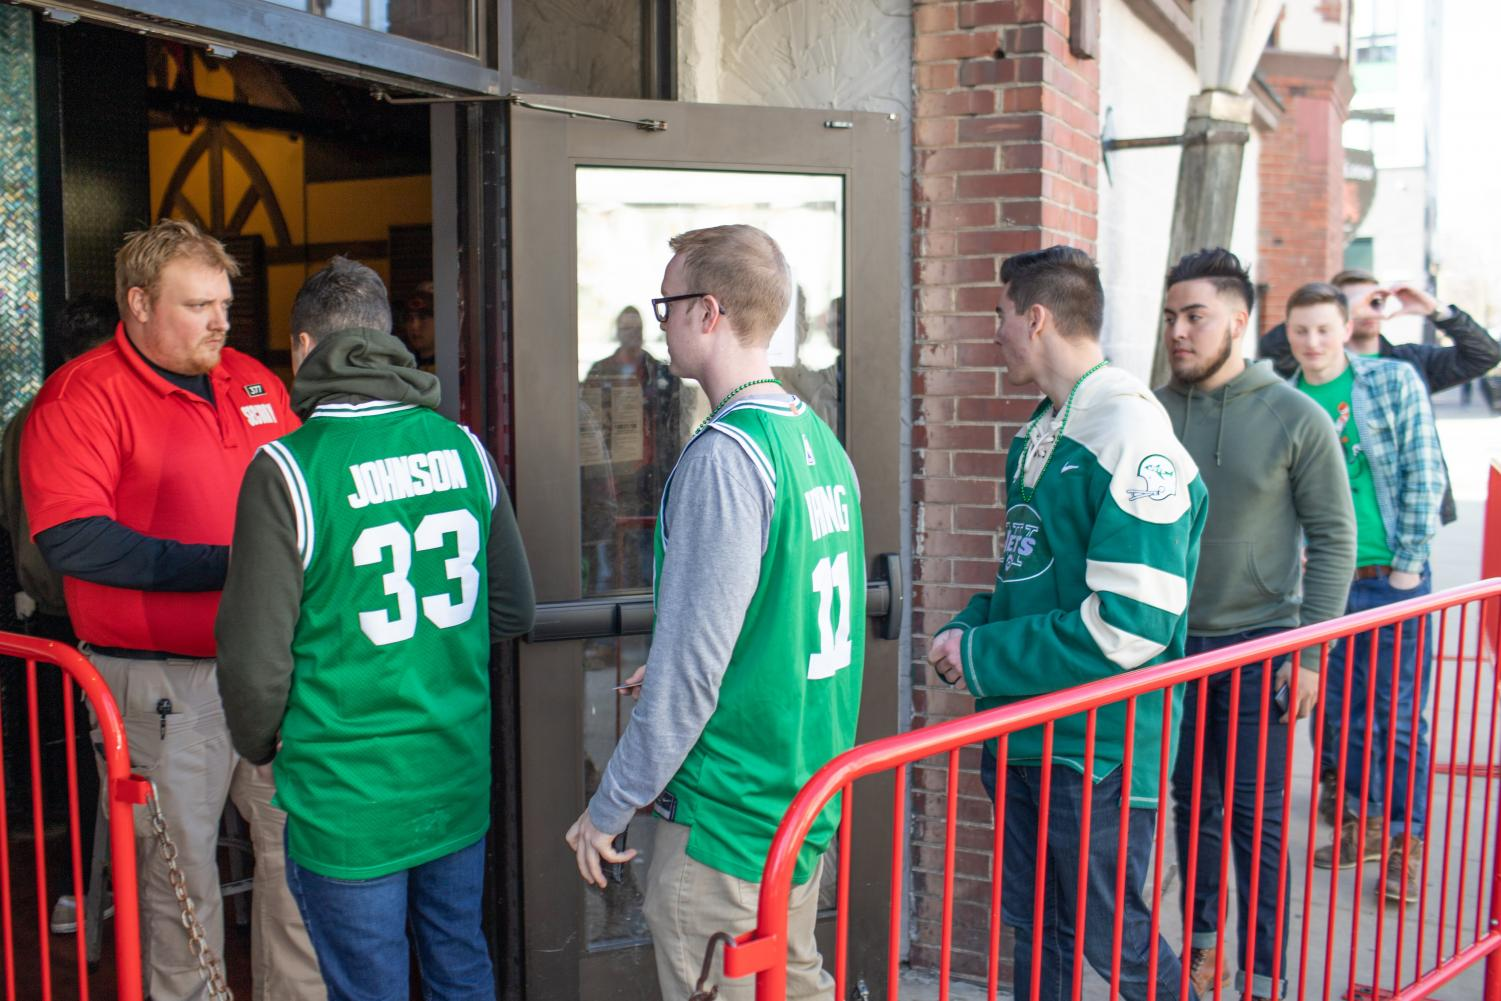 Students wait to enter the Red Lion on Friday for Unofficial. CoverMe, an app released on Feb. 18, provides live bar information to users.